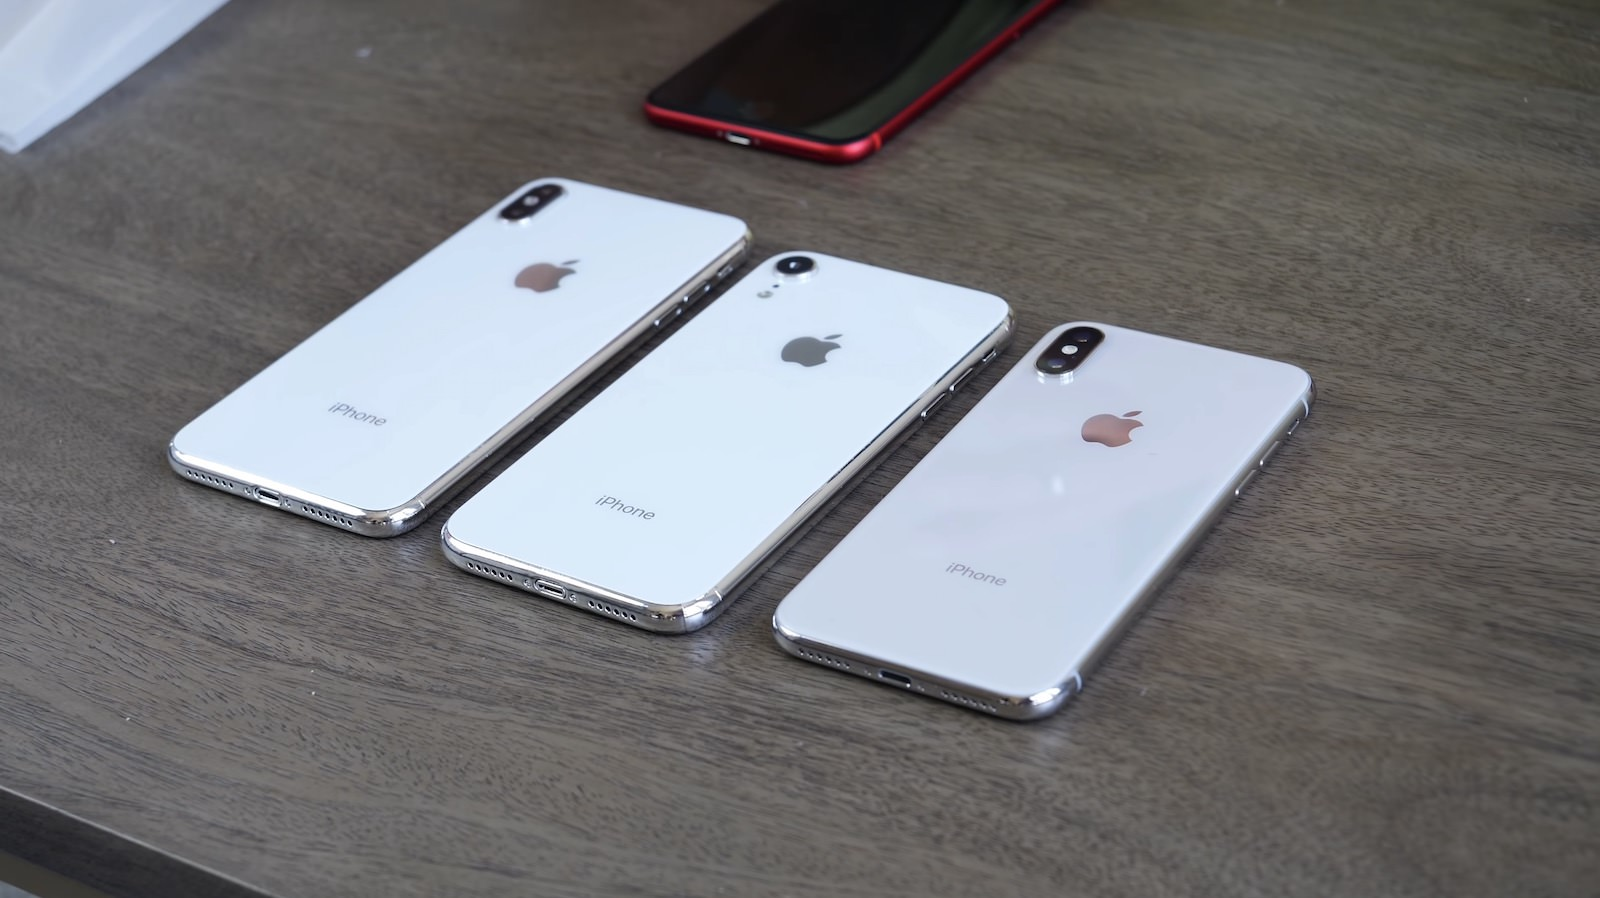 Iphone9 iphonex xplus dummy model hands on